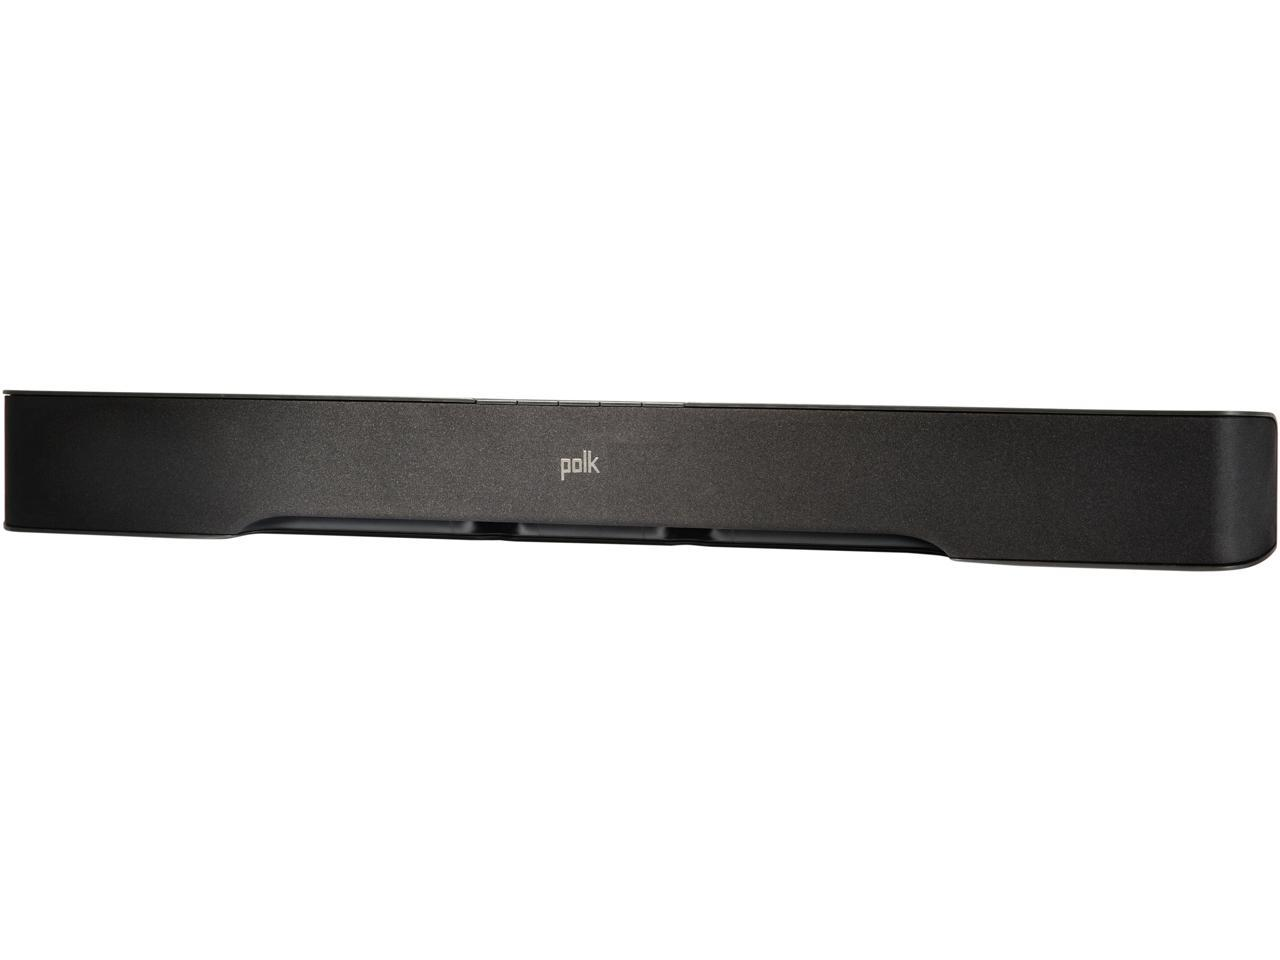 Polk Audio AM1520-A Soundbar with Bluetooth & RC